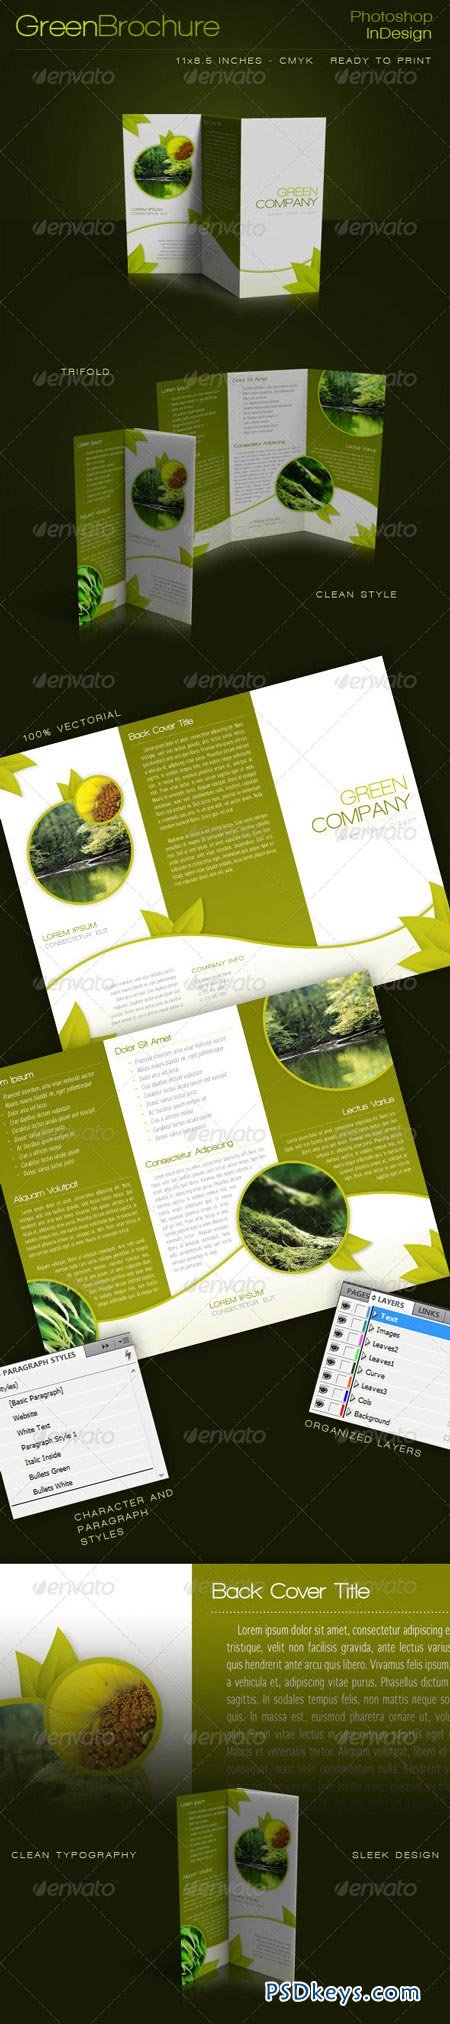 Green Trifold Brochure InDesign Template 235459